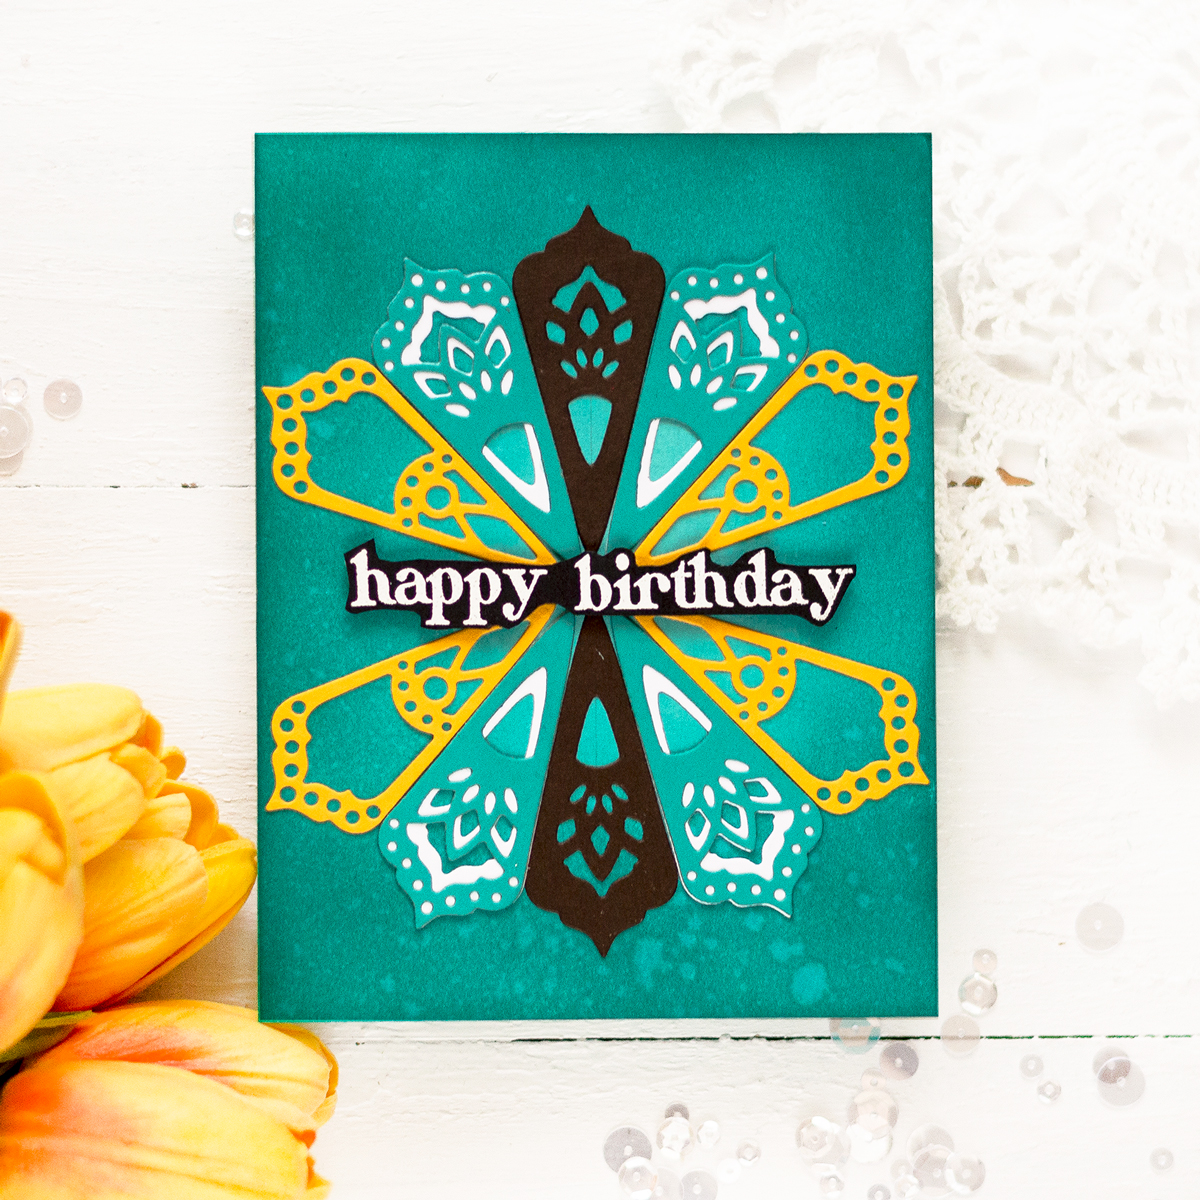 Spellbinders Small Die Of The Month June Kaleidoscope Trio. Card by Svitlana Shayevich